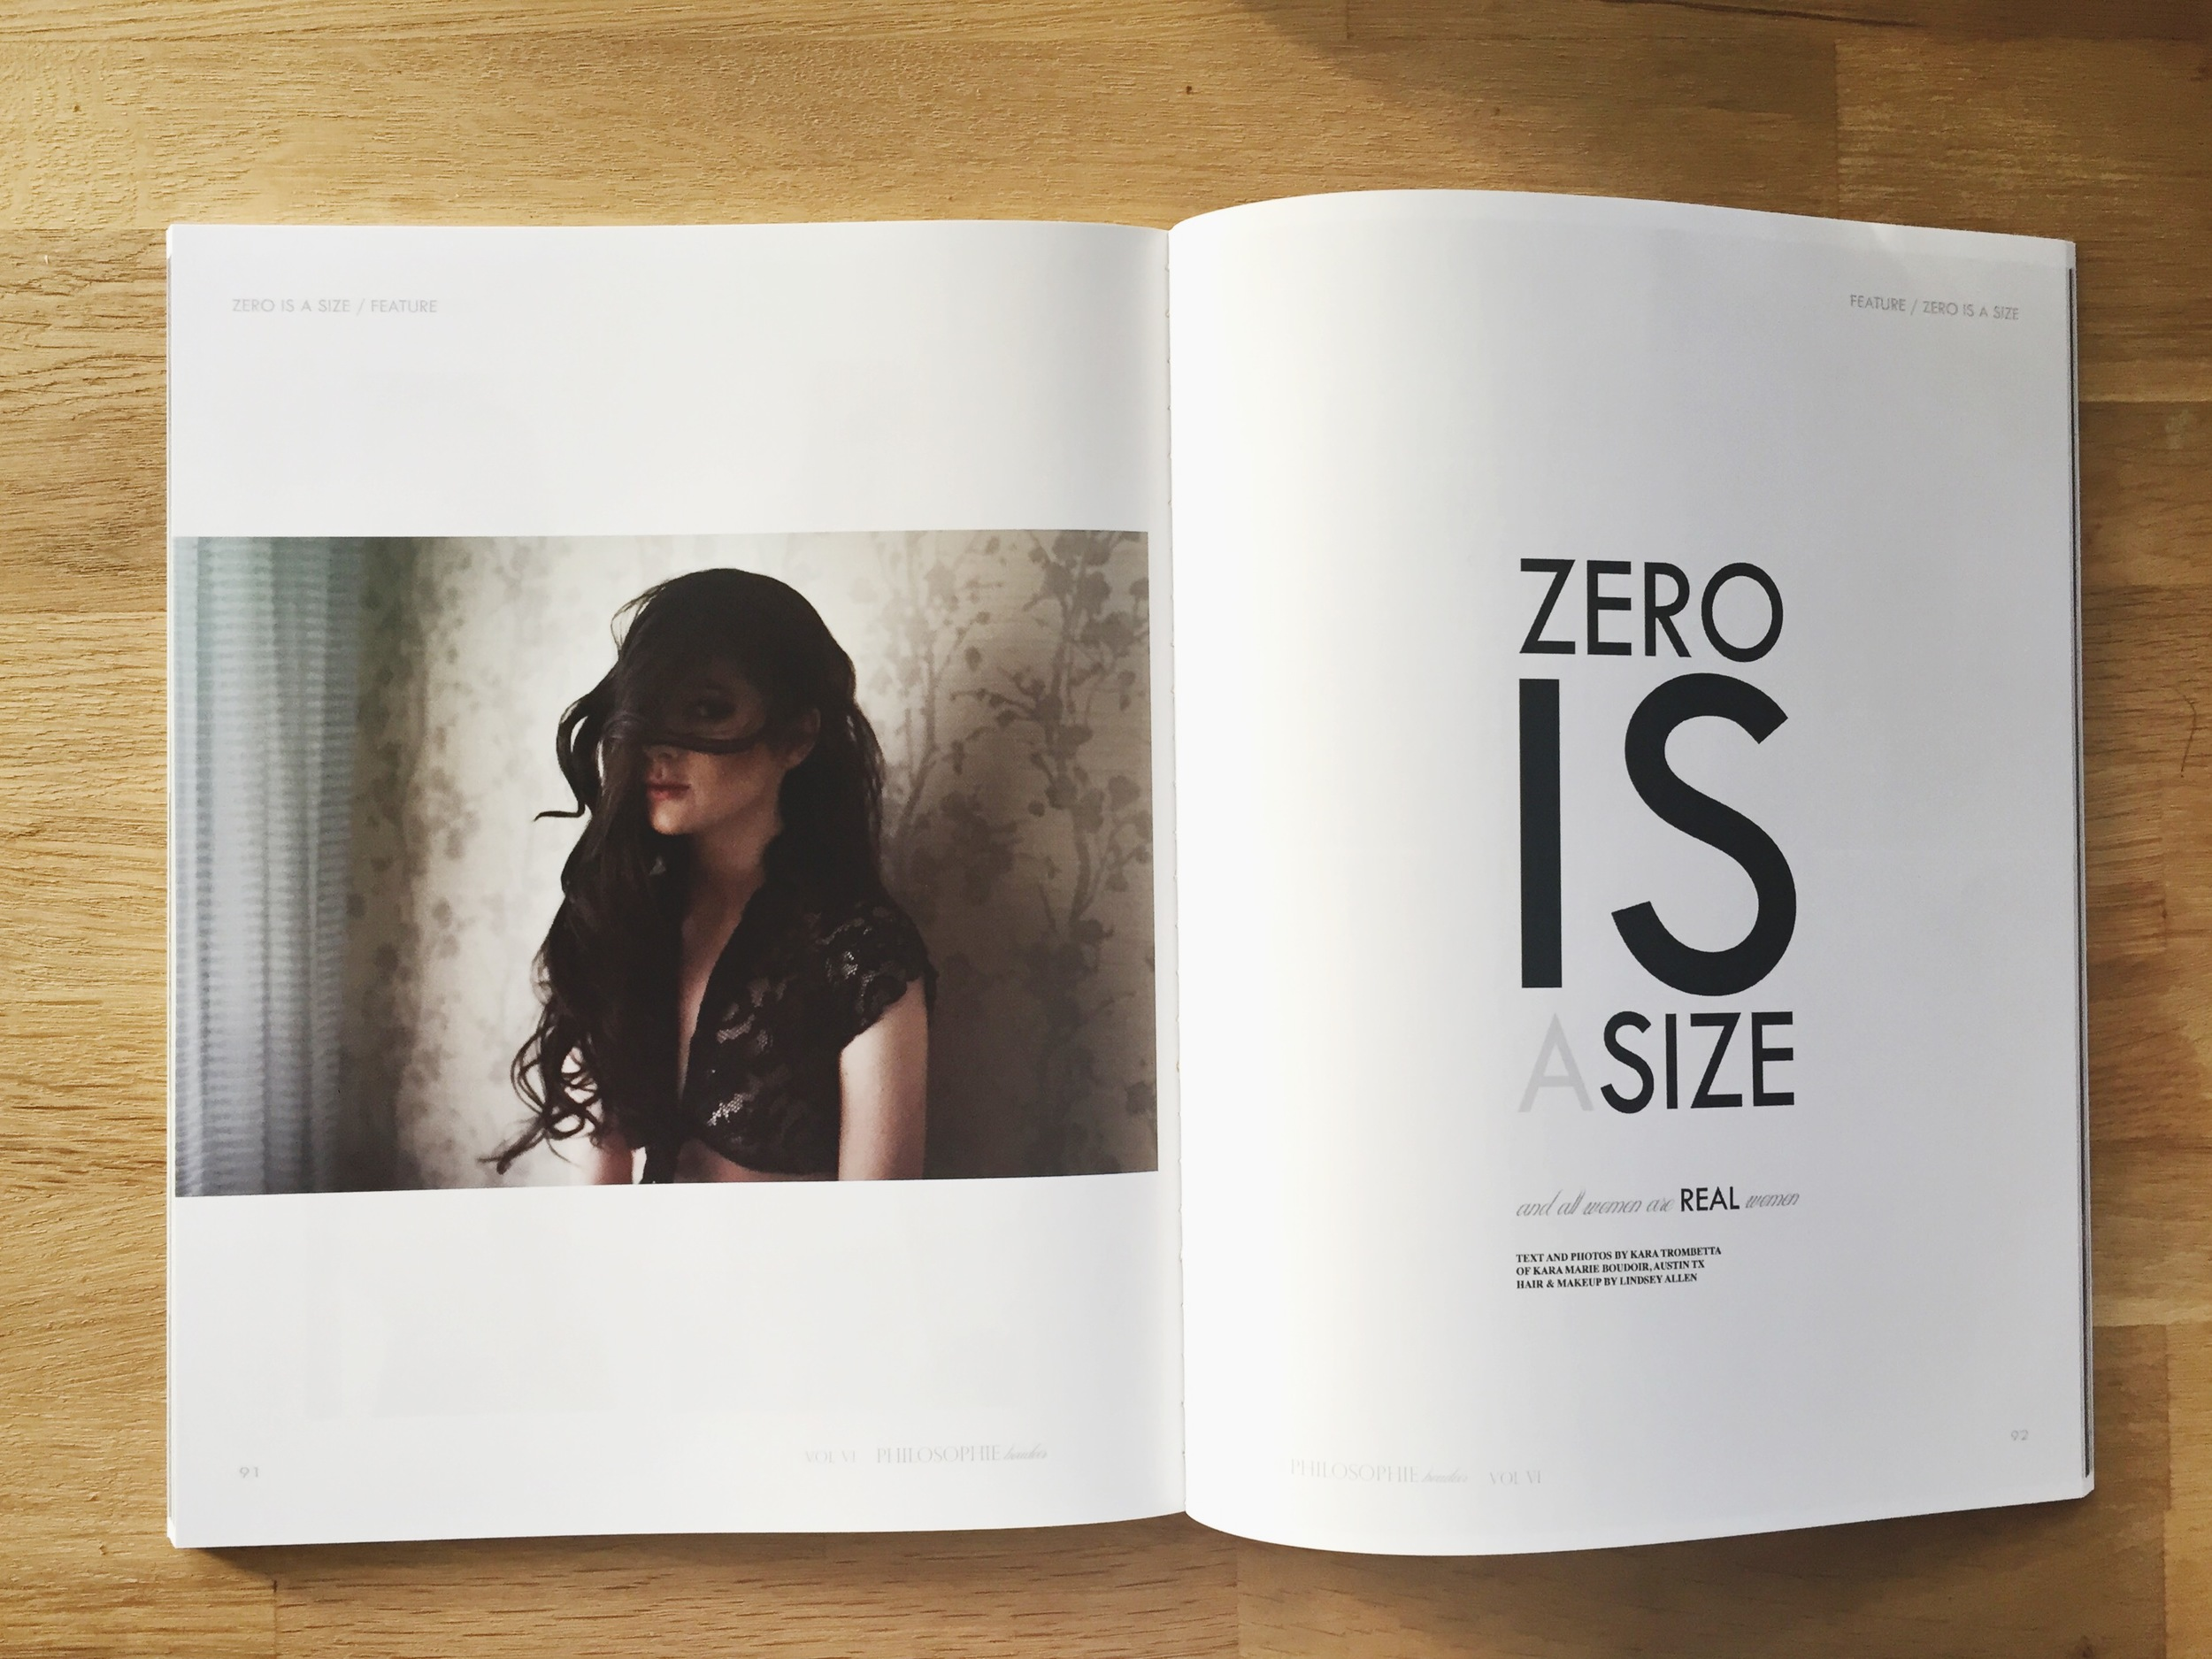 Zero Is A Size | Kara Marie Boudoir for PHILOSOPHIE Magazine